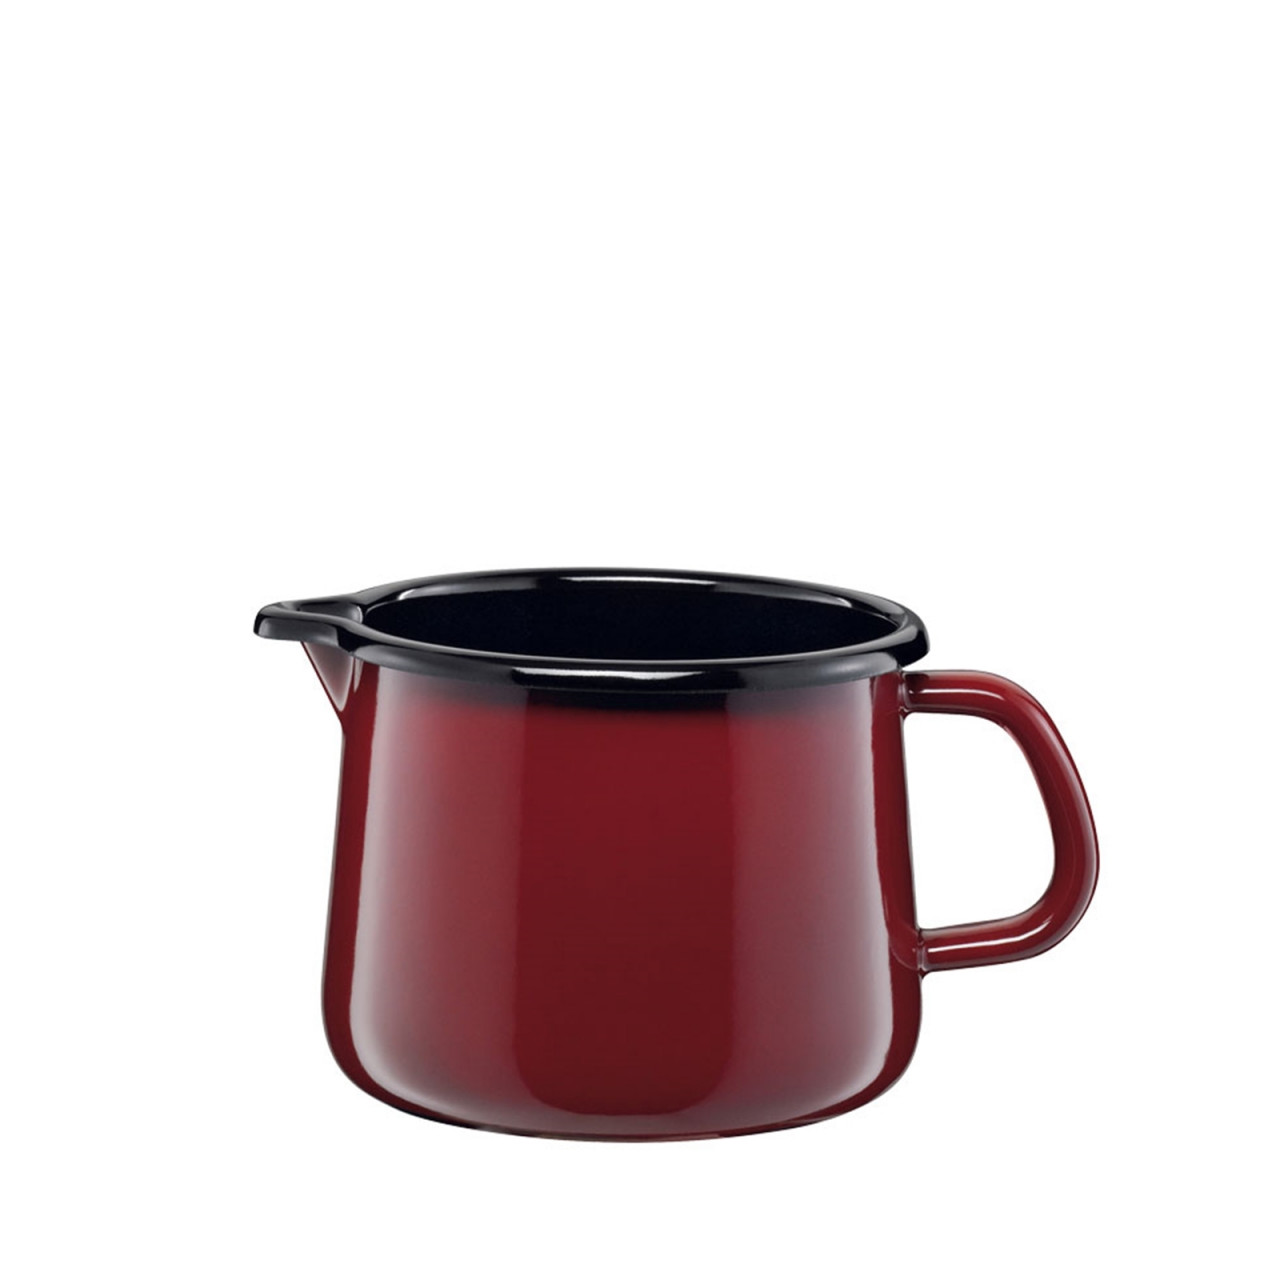 Riess Sparset 5-teilig ROSSO